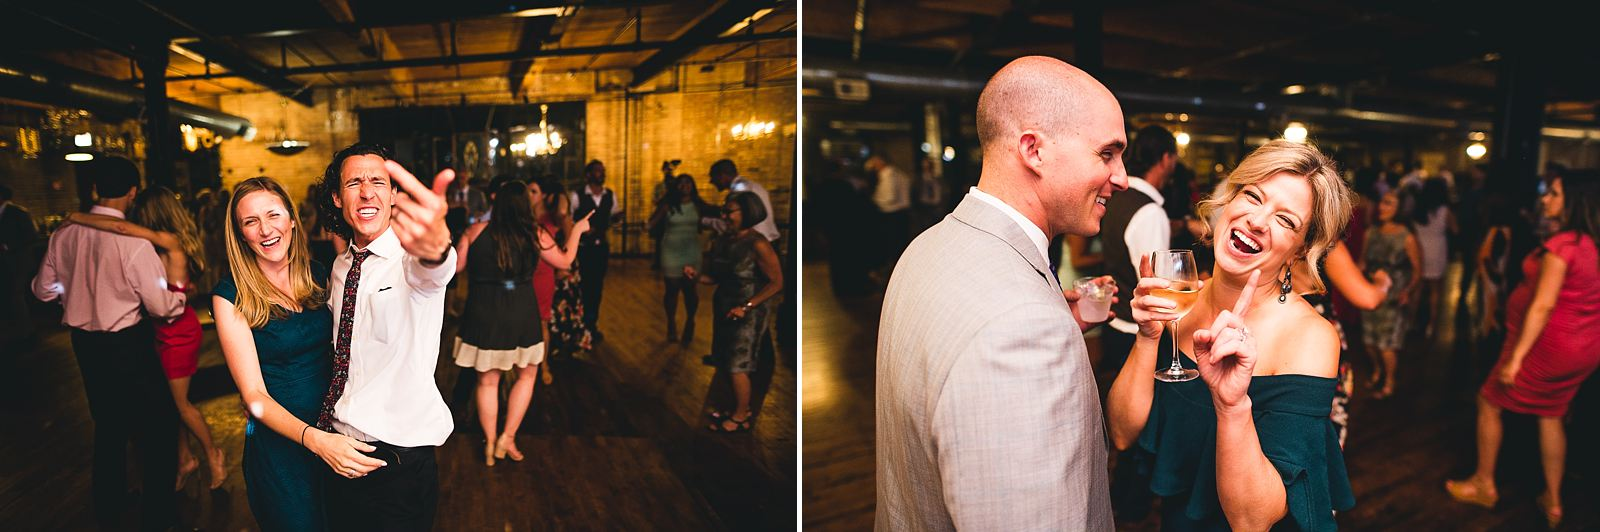 48 best salvage one wedding photos - Salvage One Wedding // Pearl + Ken